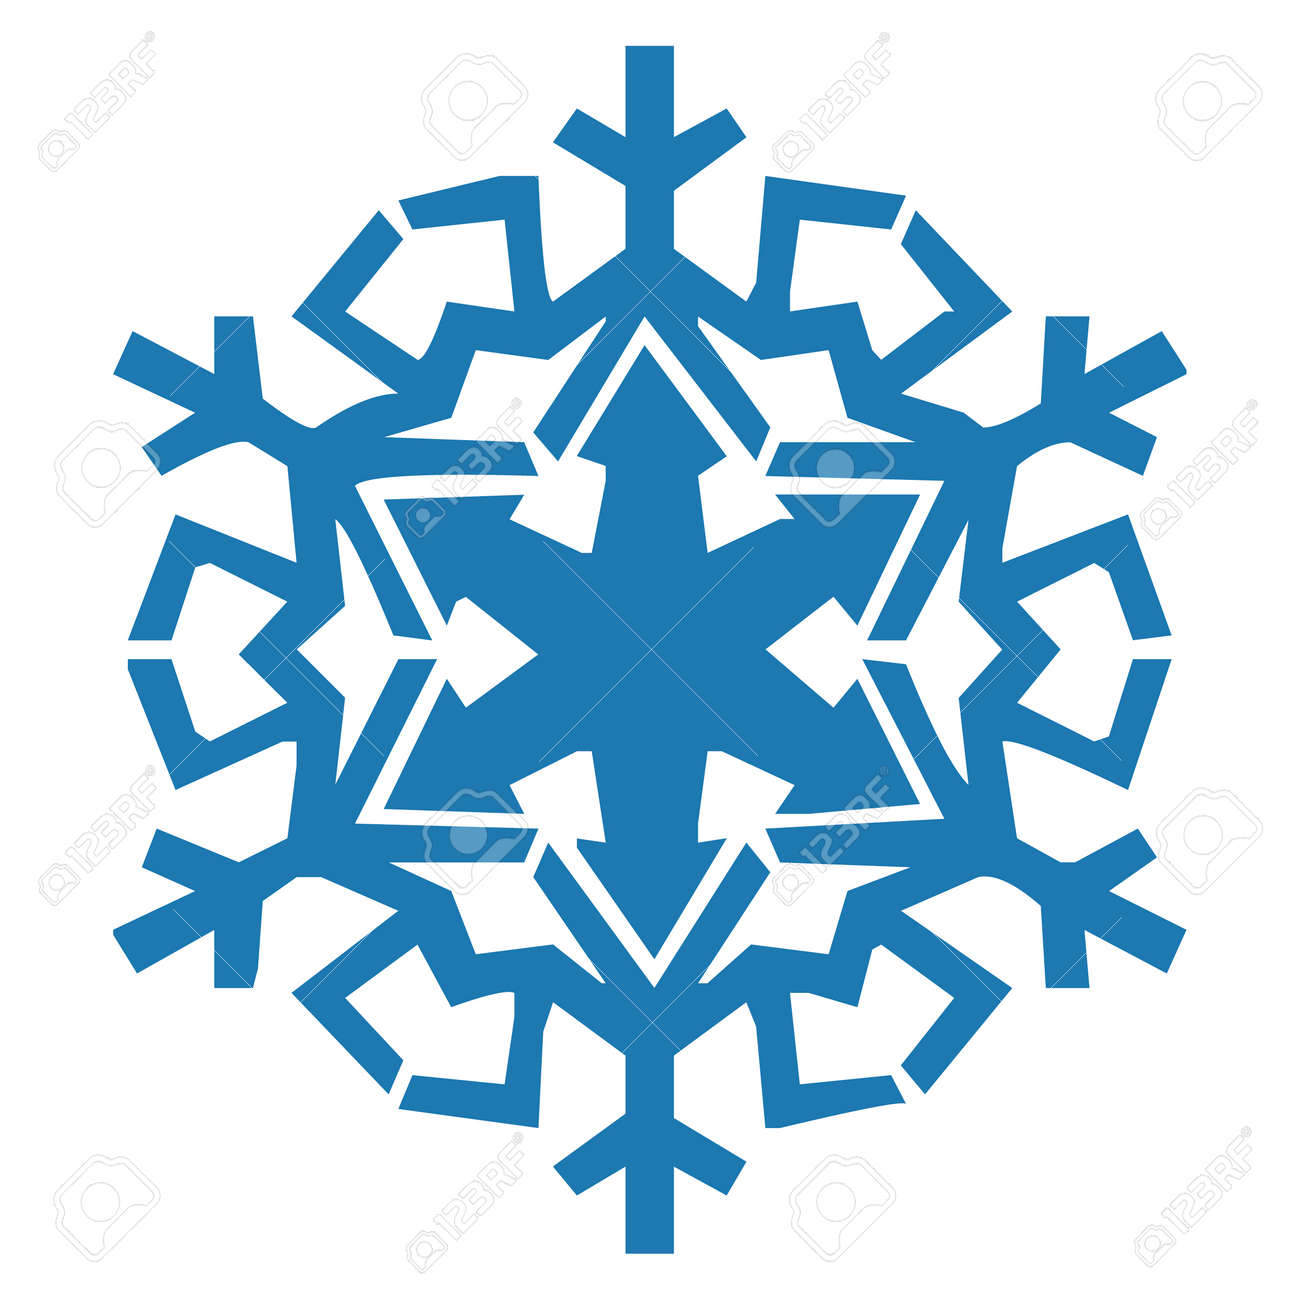 snowflake vector icon blue color winter white christmas snow rh 123rf com snowflake free vector art snowflake background vector free